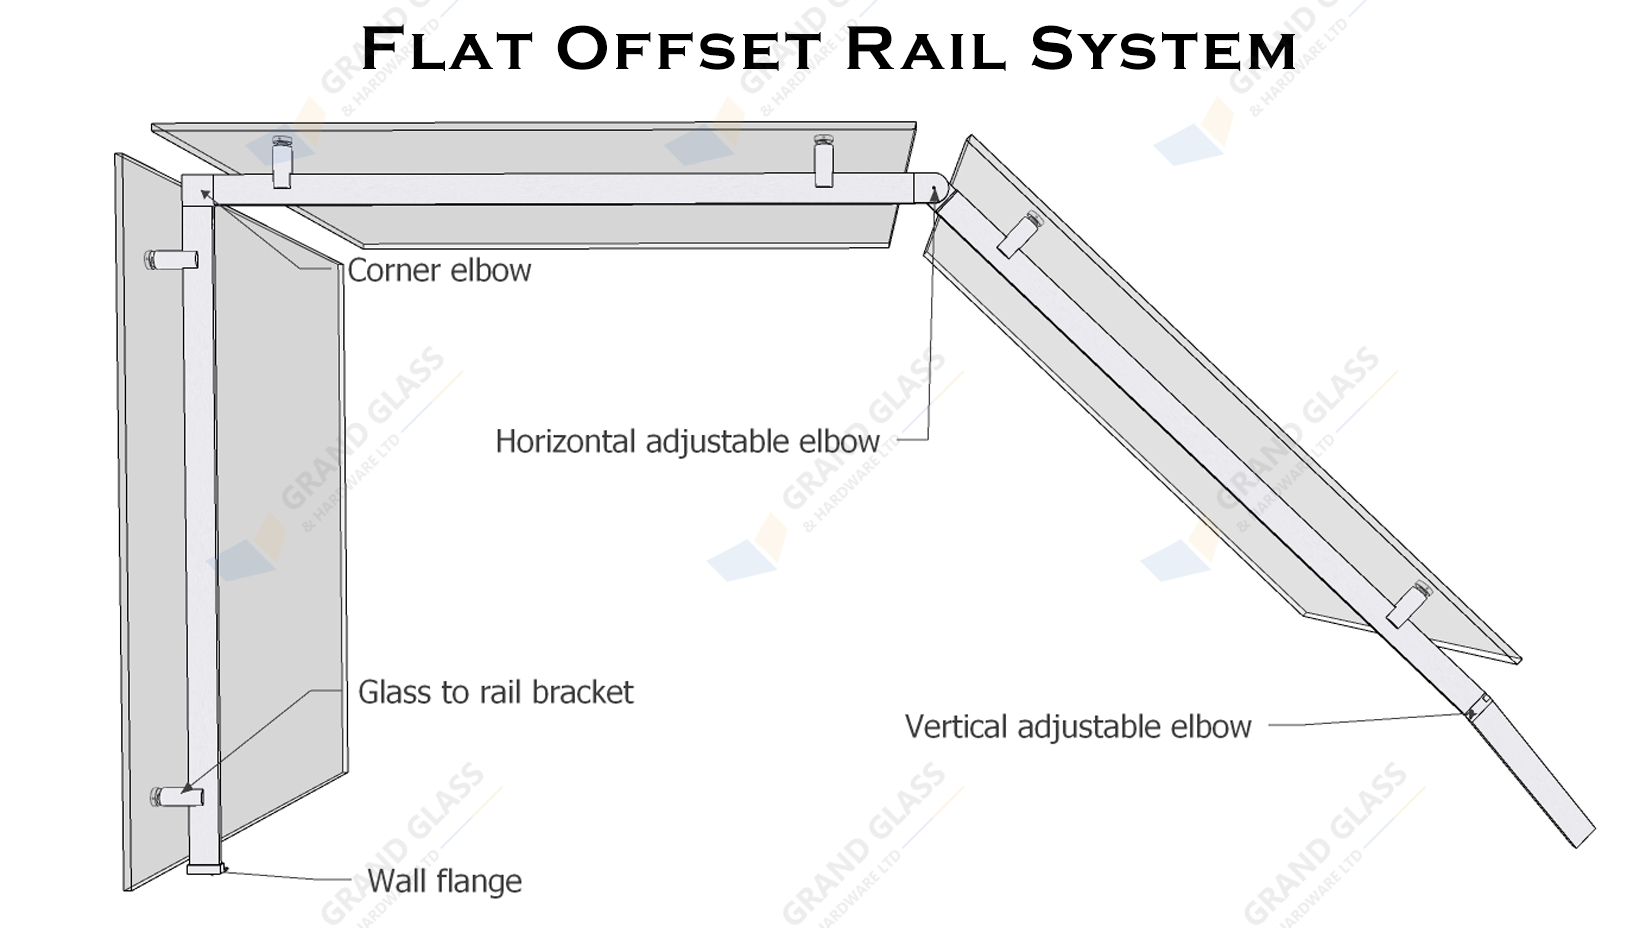 flat-offset-rail-system-on-the-web-water.jpg